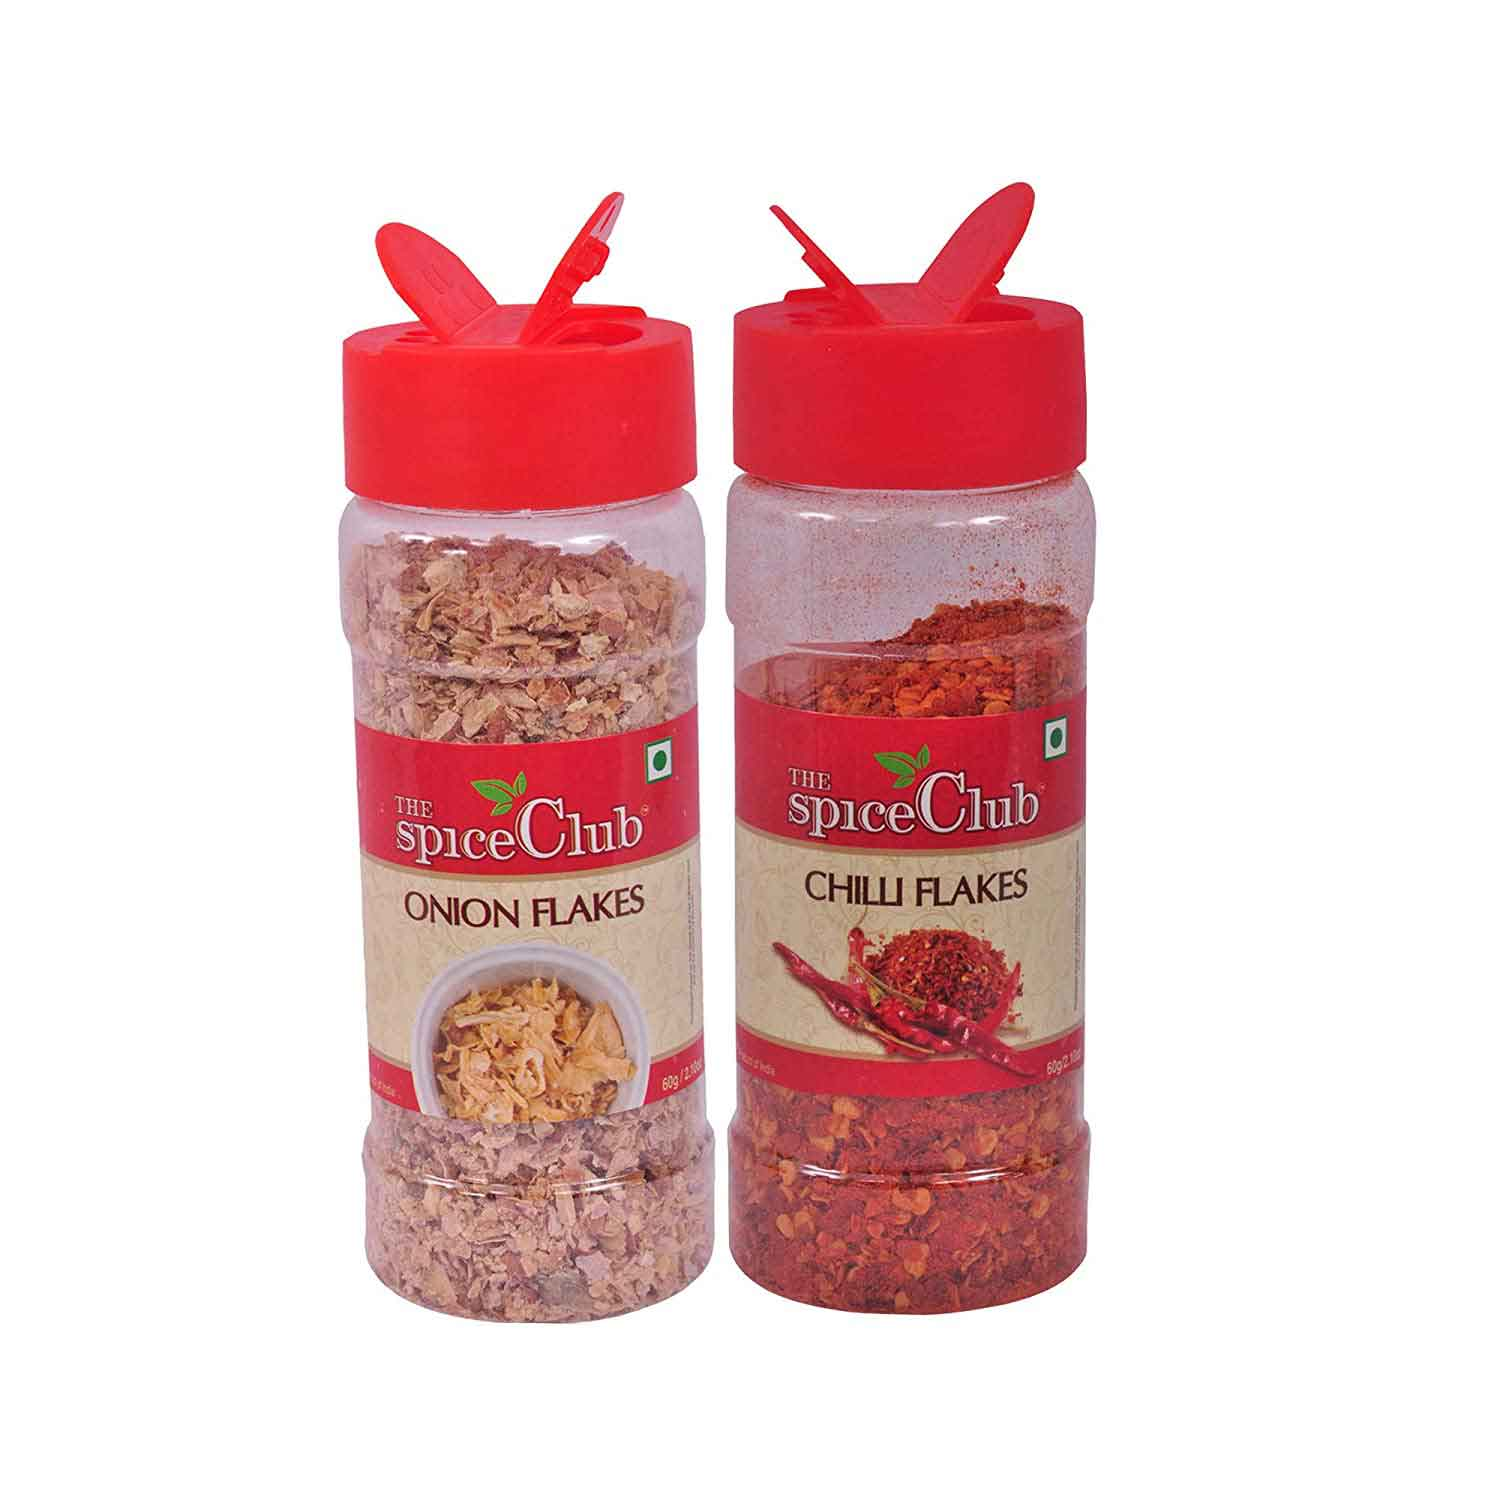 The Spice Club Red Onion Flakes 40g + Chilli Flakes 60g - for Pizza, Noodles, Veg and Non Veg Seasoning